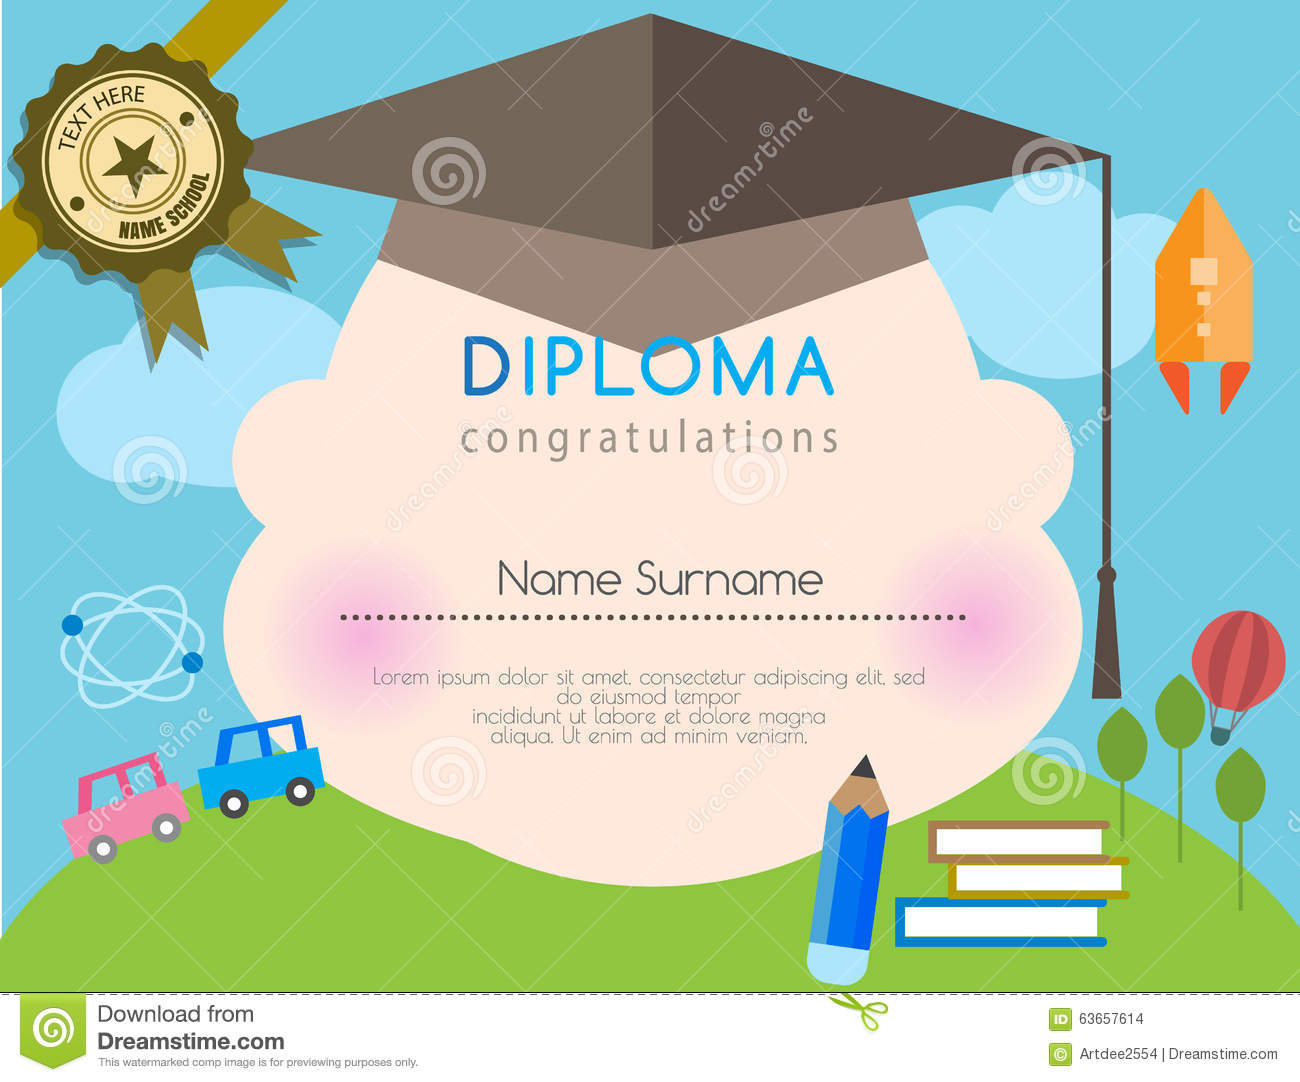 preschool elementary school kids diploma certificate background vector illustration cartoondealercom 55021418